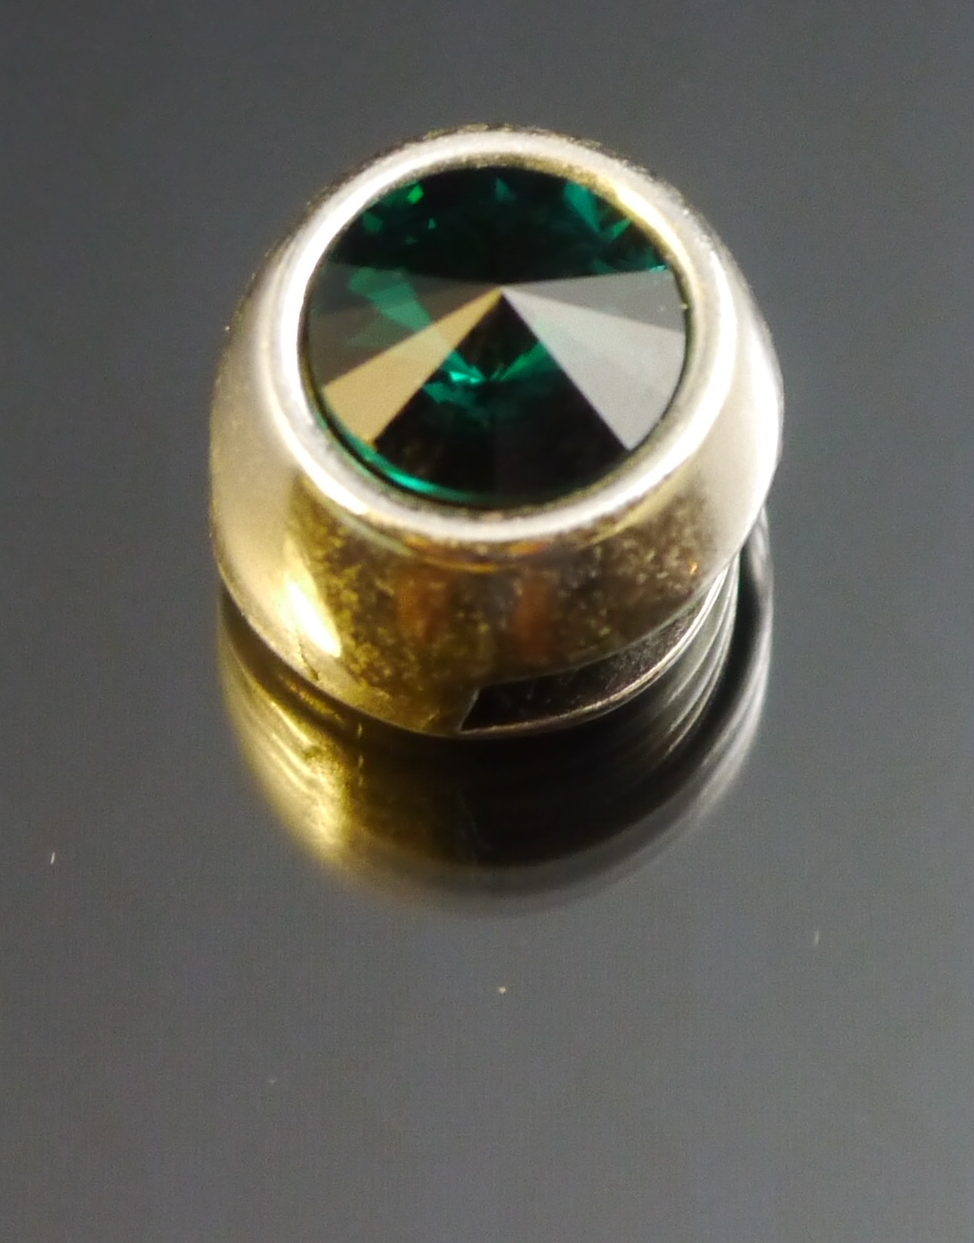 Zamak Slider 10mm x 3mm mit Swarovski Elements Stein Emerald